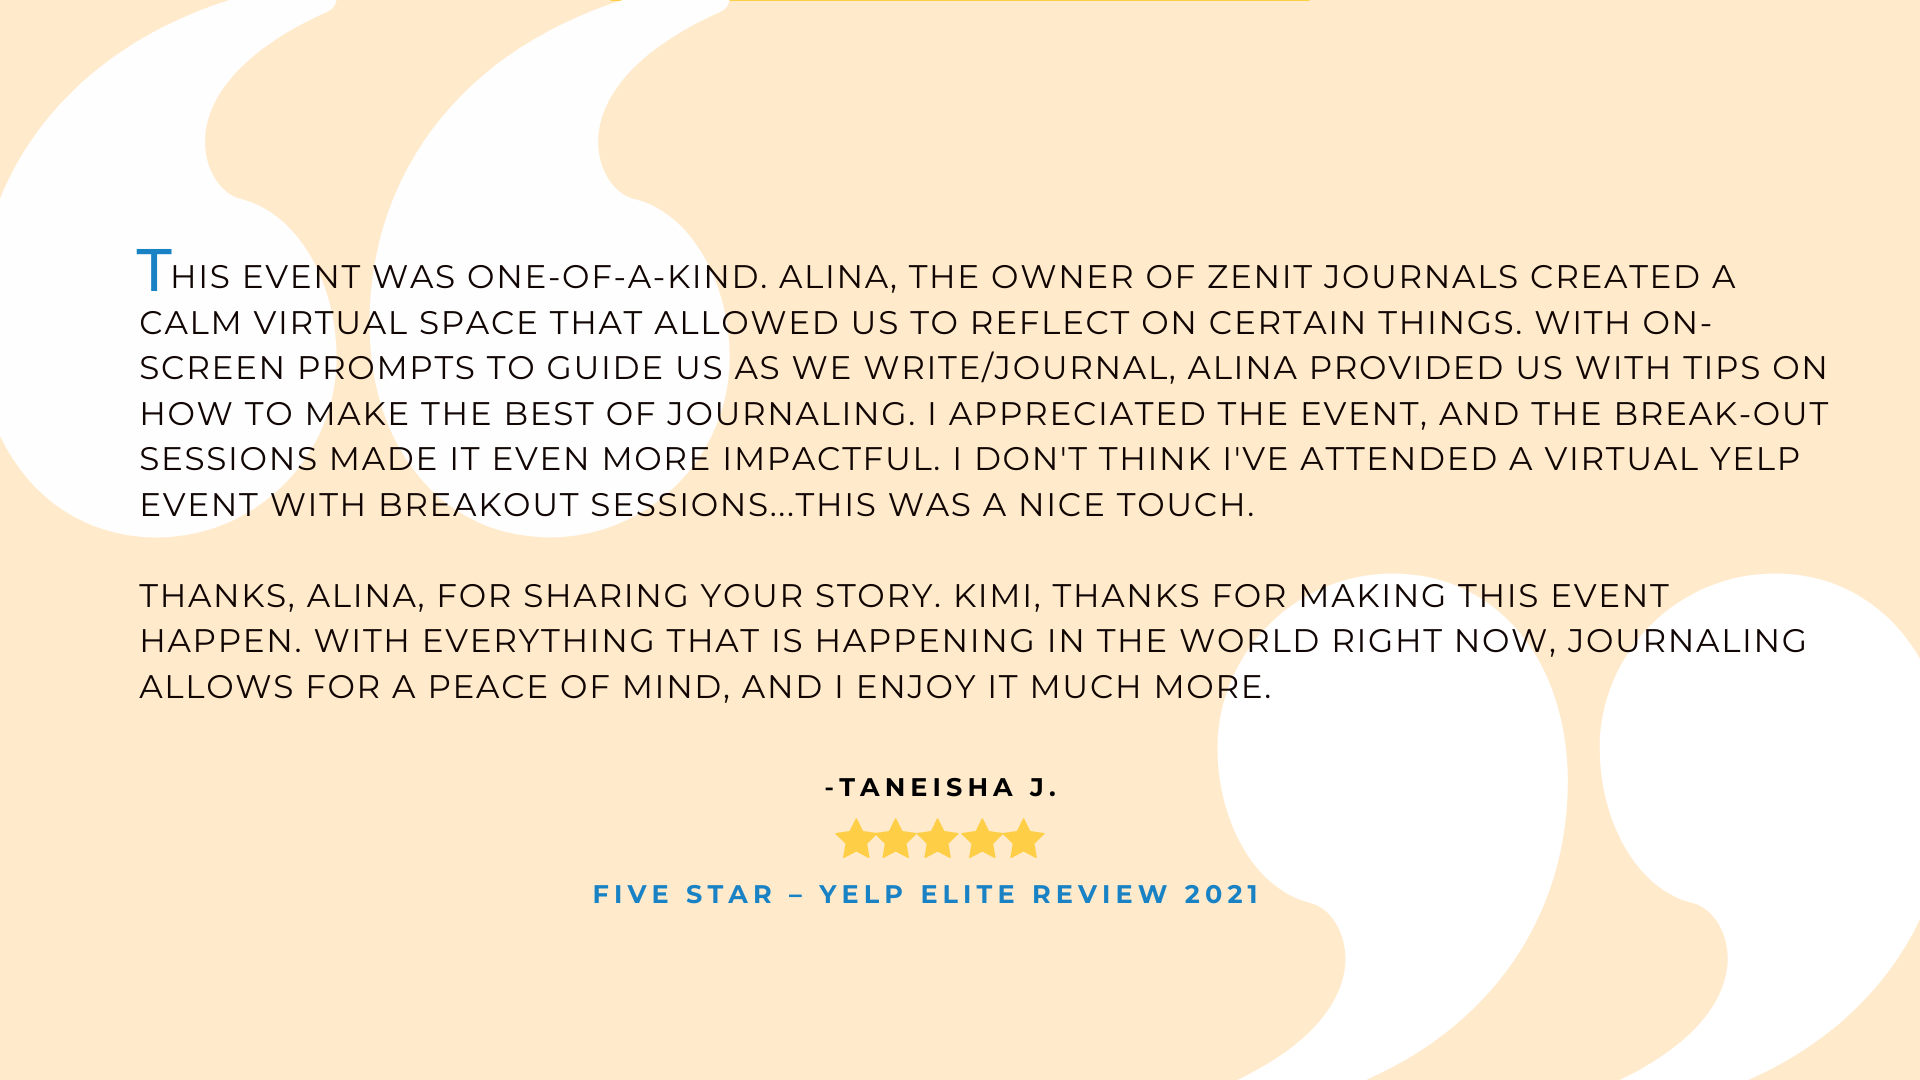 Five star yelp elite quote about Zenit Retreats